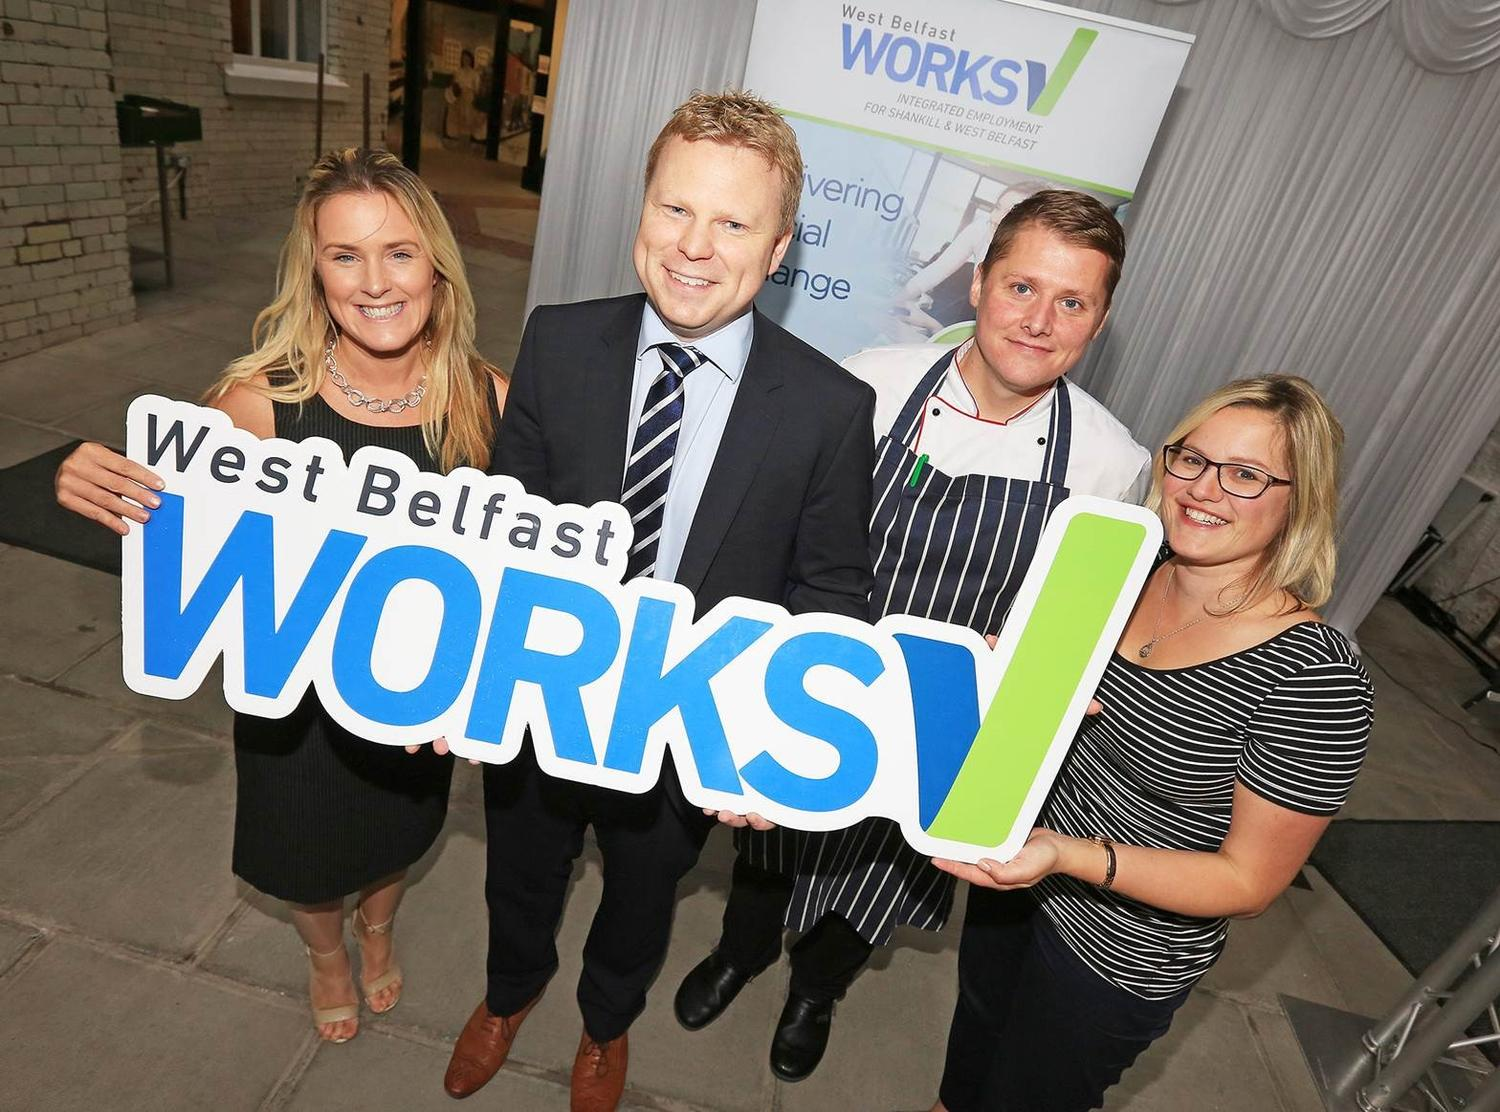 West Belfast Works - Science Starz and The Fat Truck - The Ortus Group